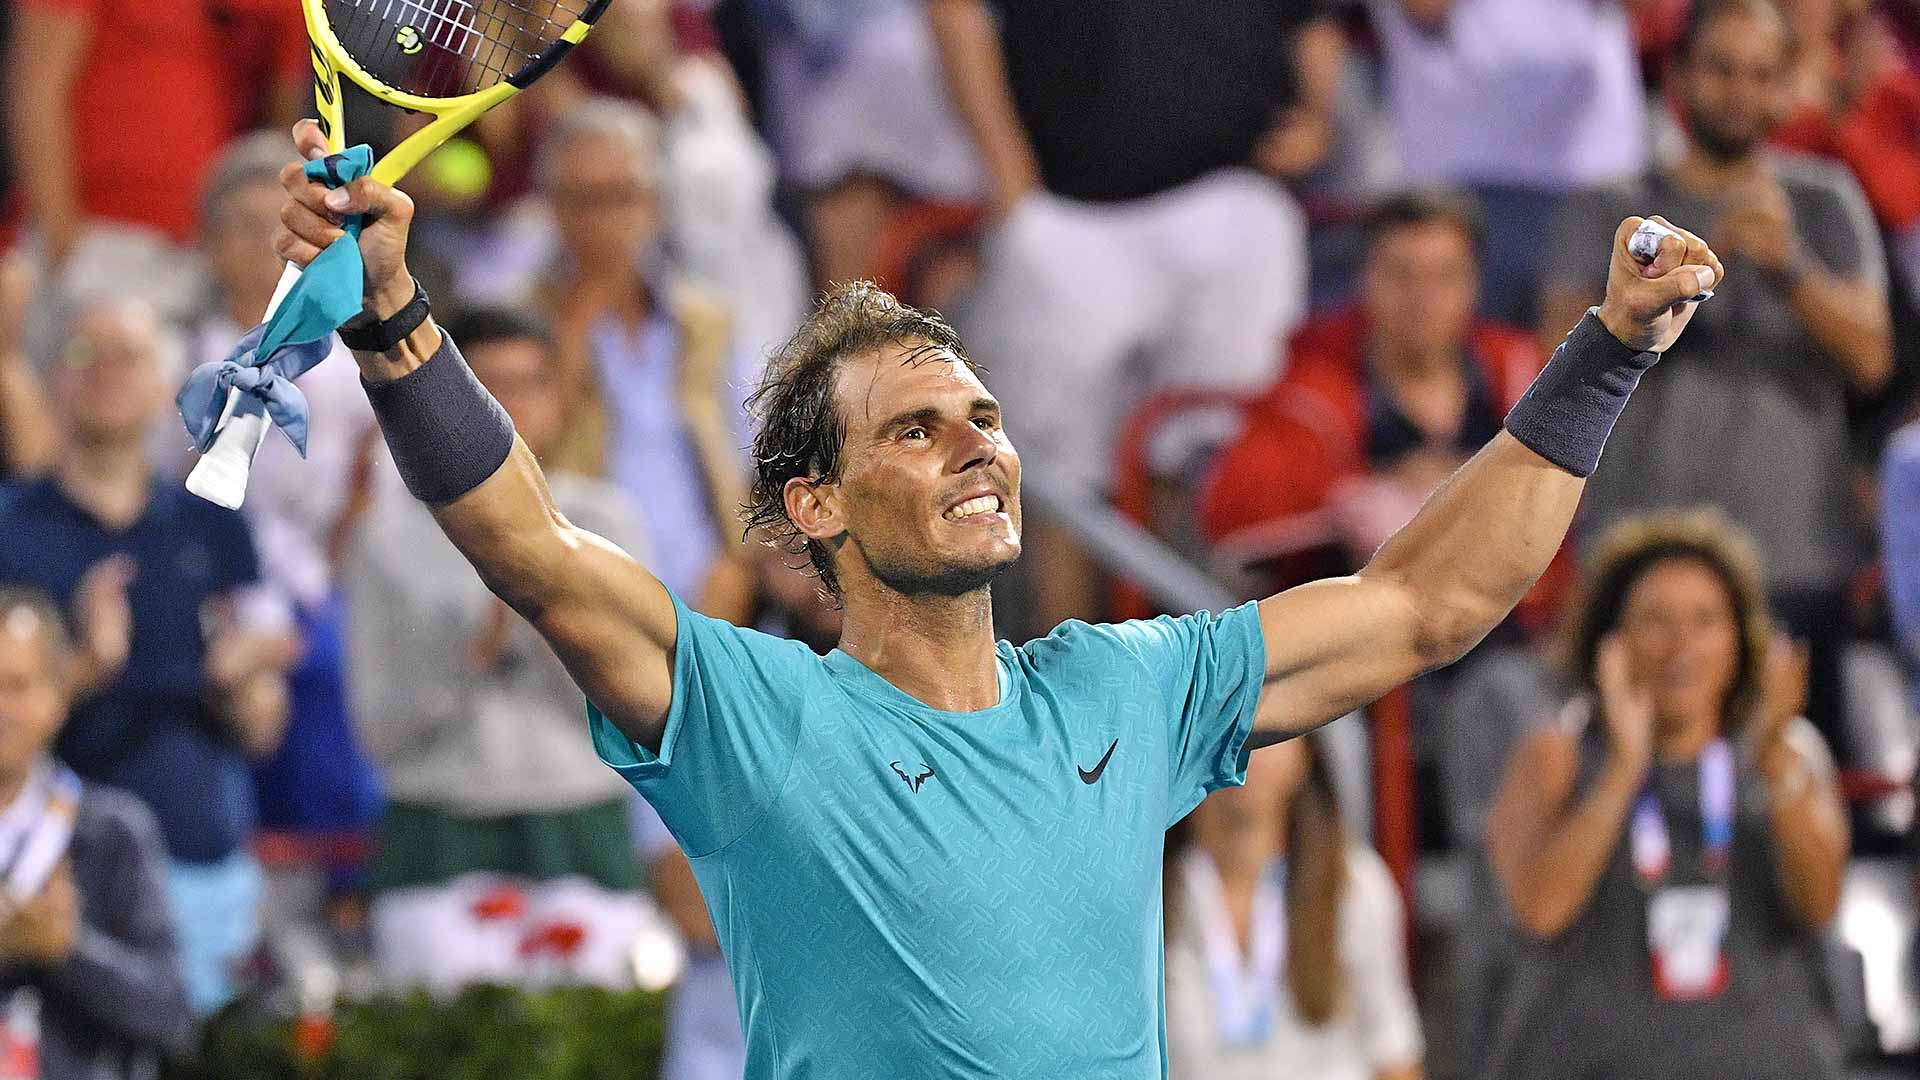 Rafael Nadal advances past Guido Pella on Thursday at the Coupe Rogers in Montreal